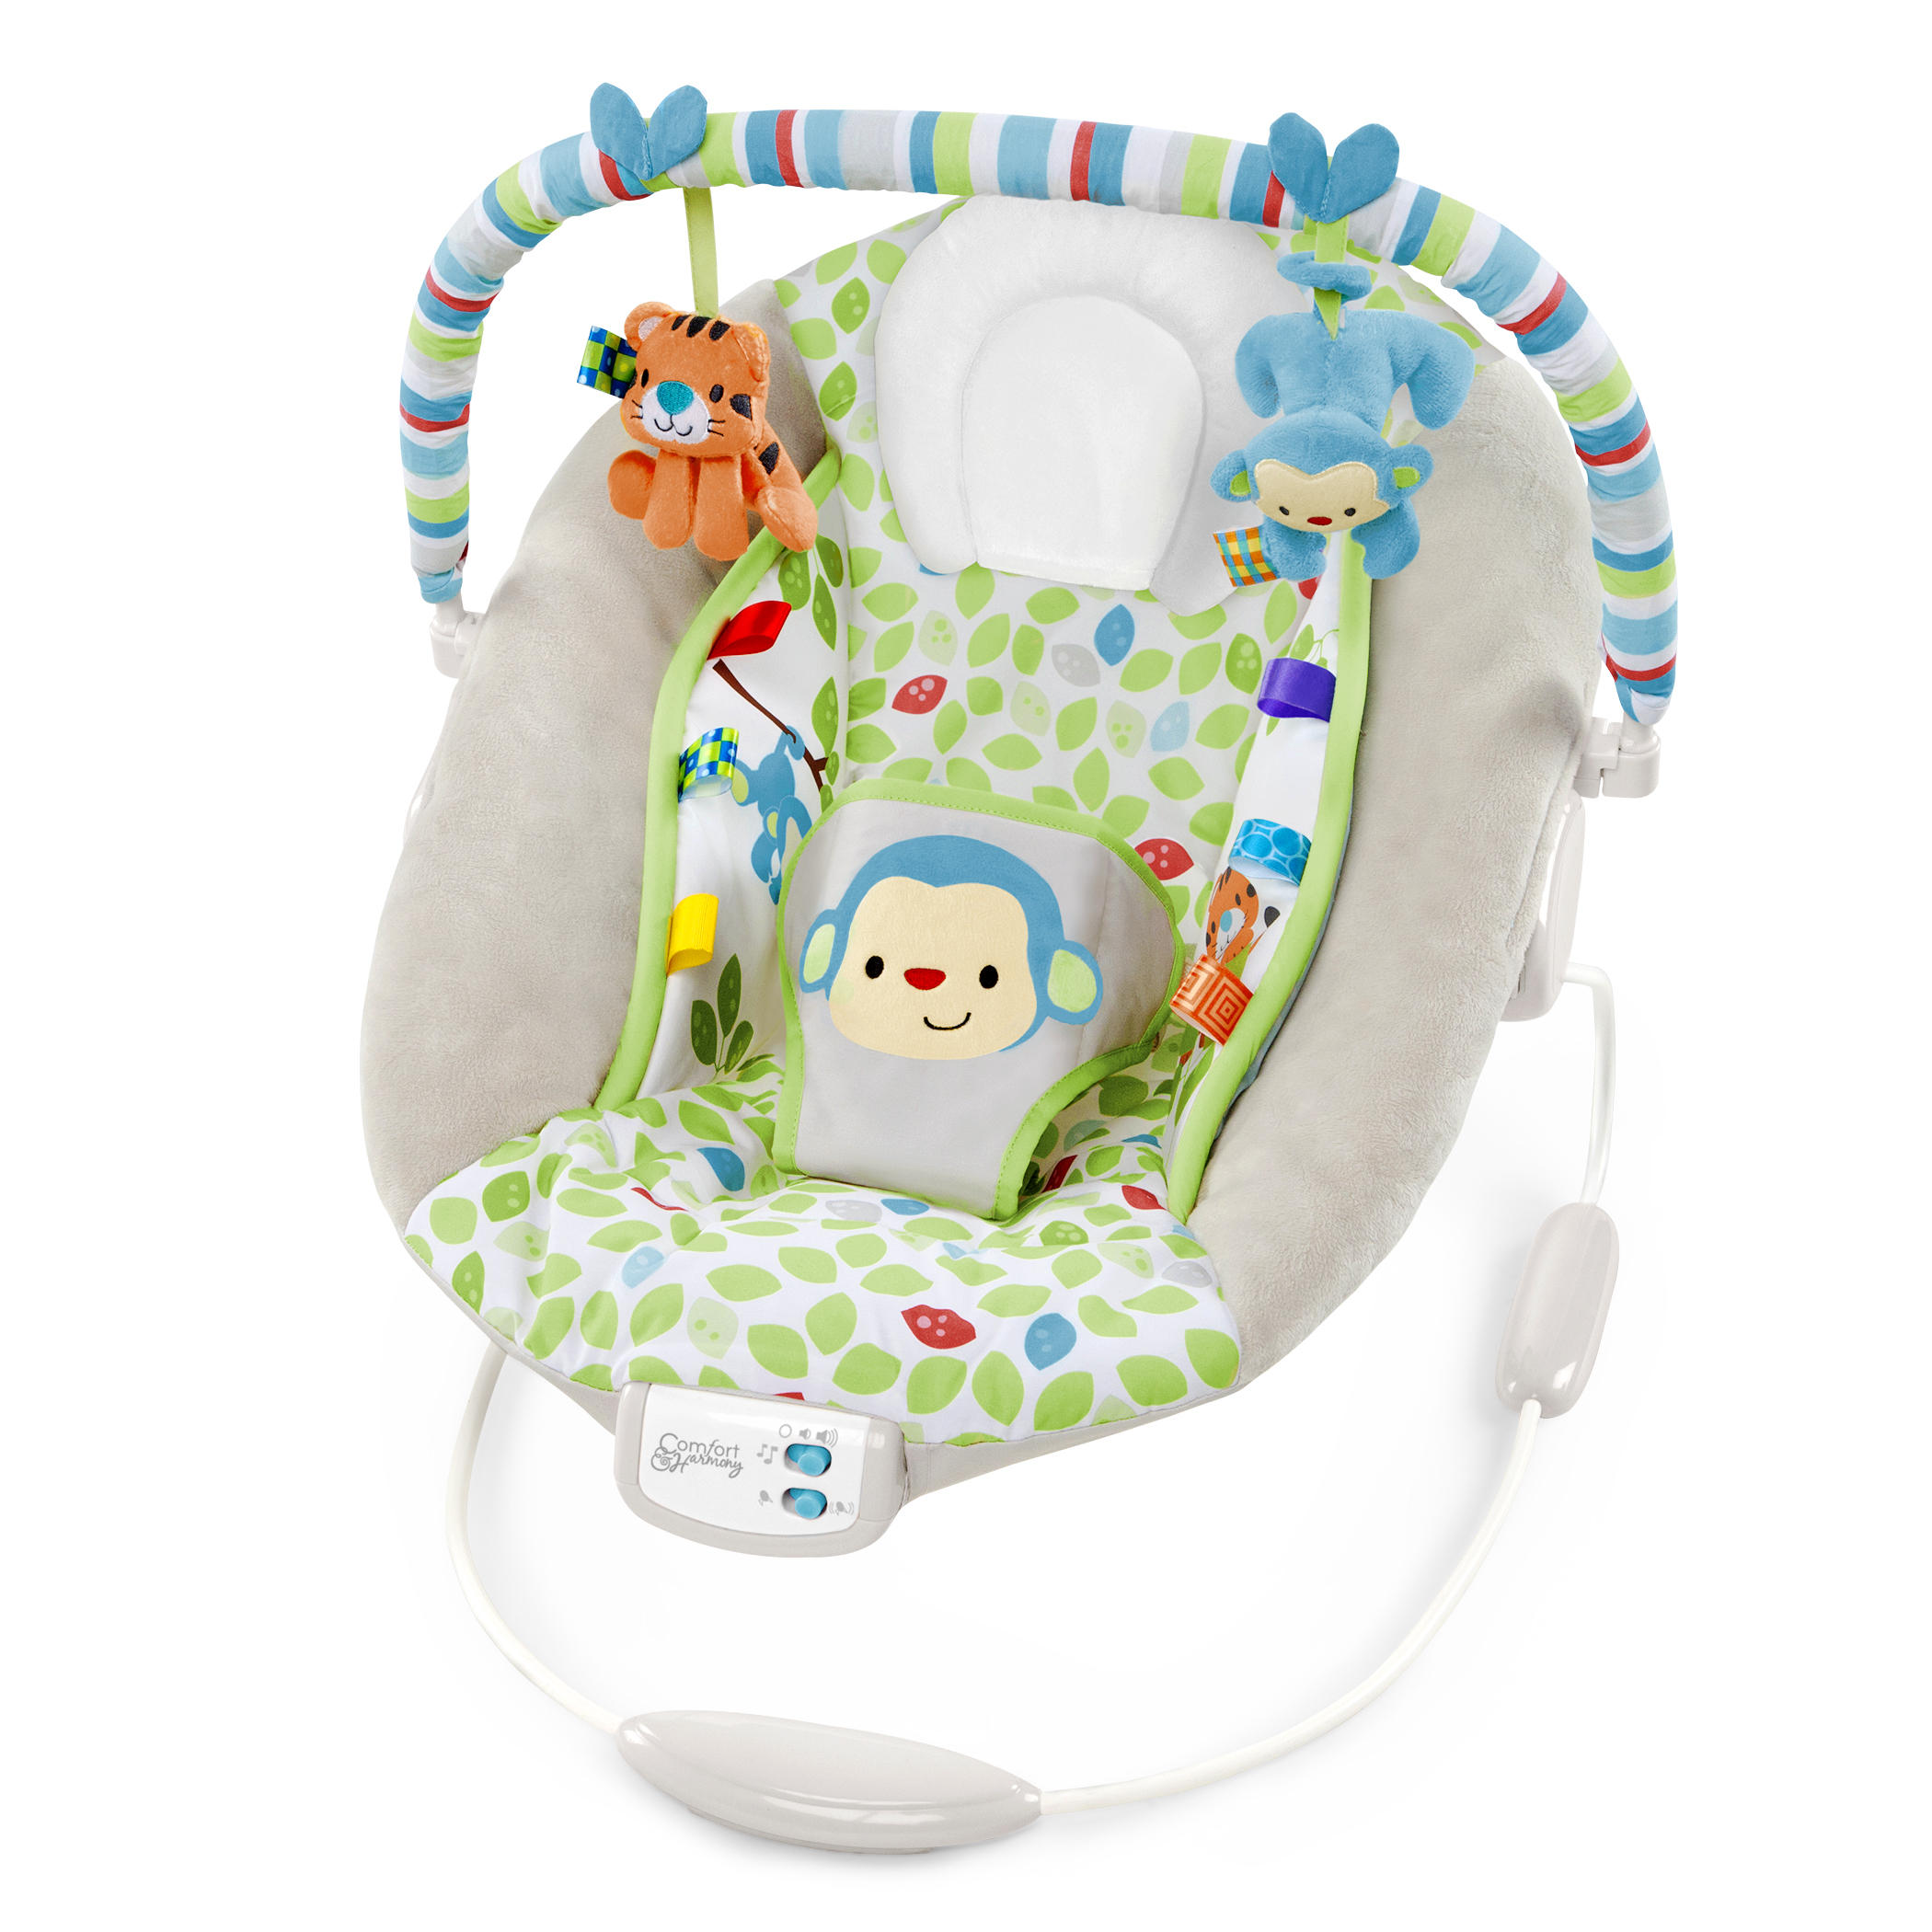 Comfort & Harmony Cradling Bouncer - Merry Monkey